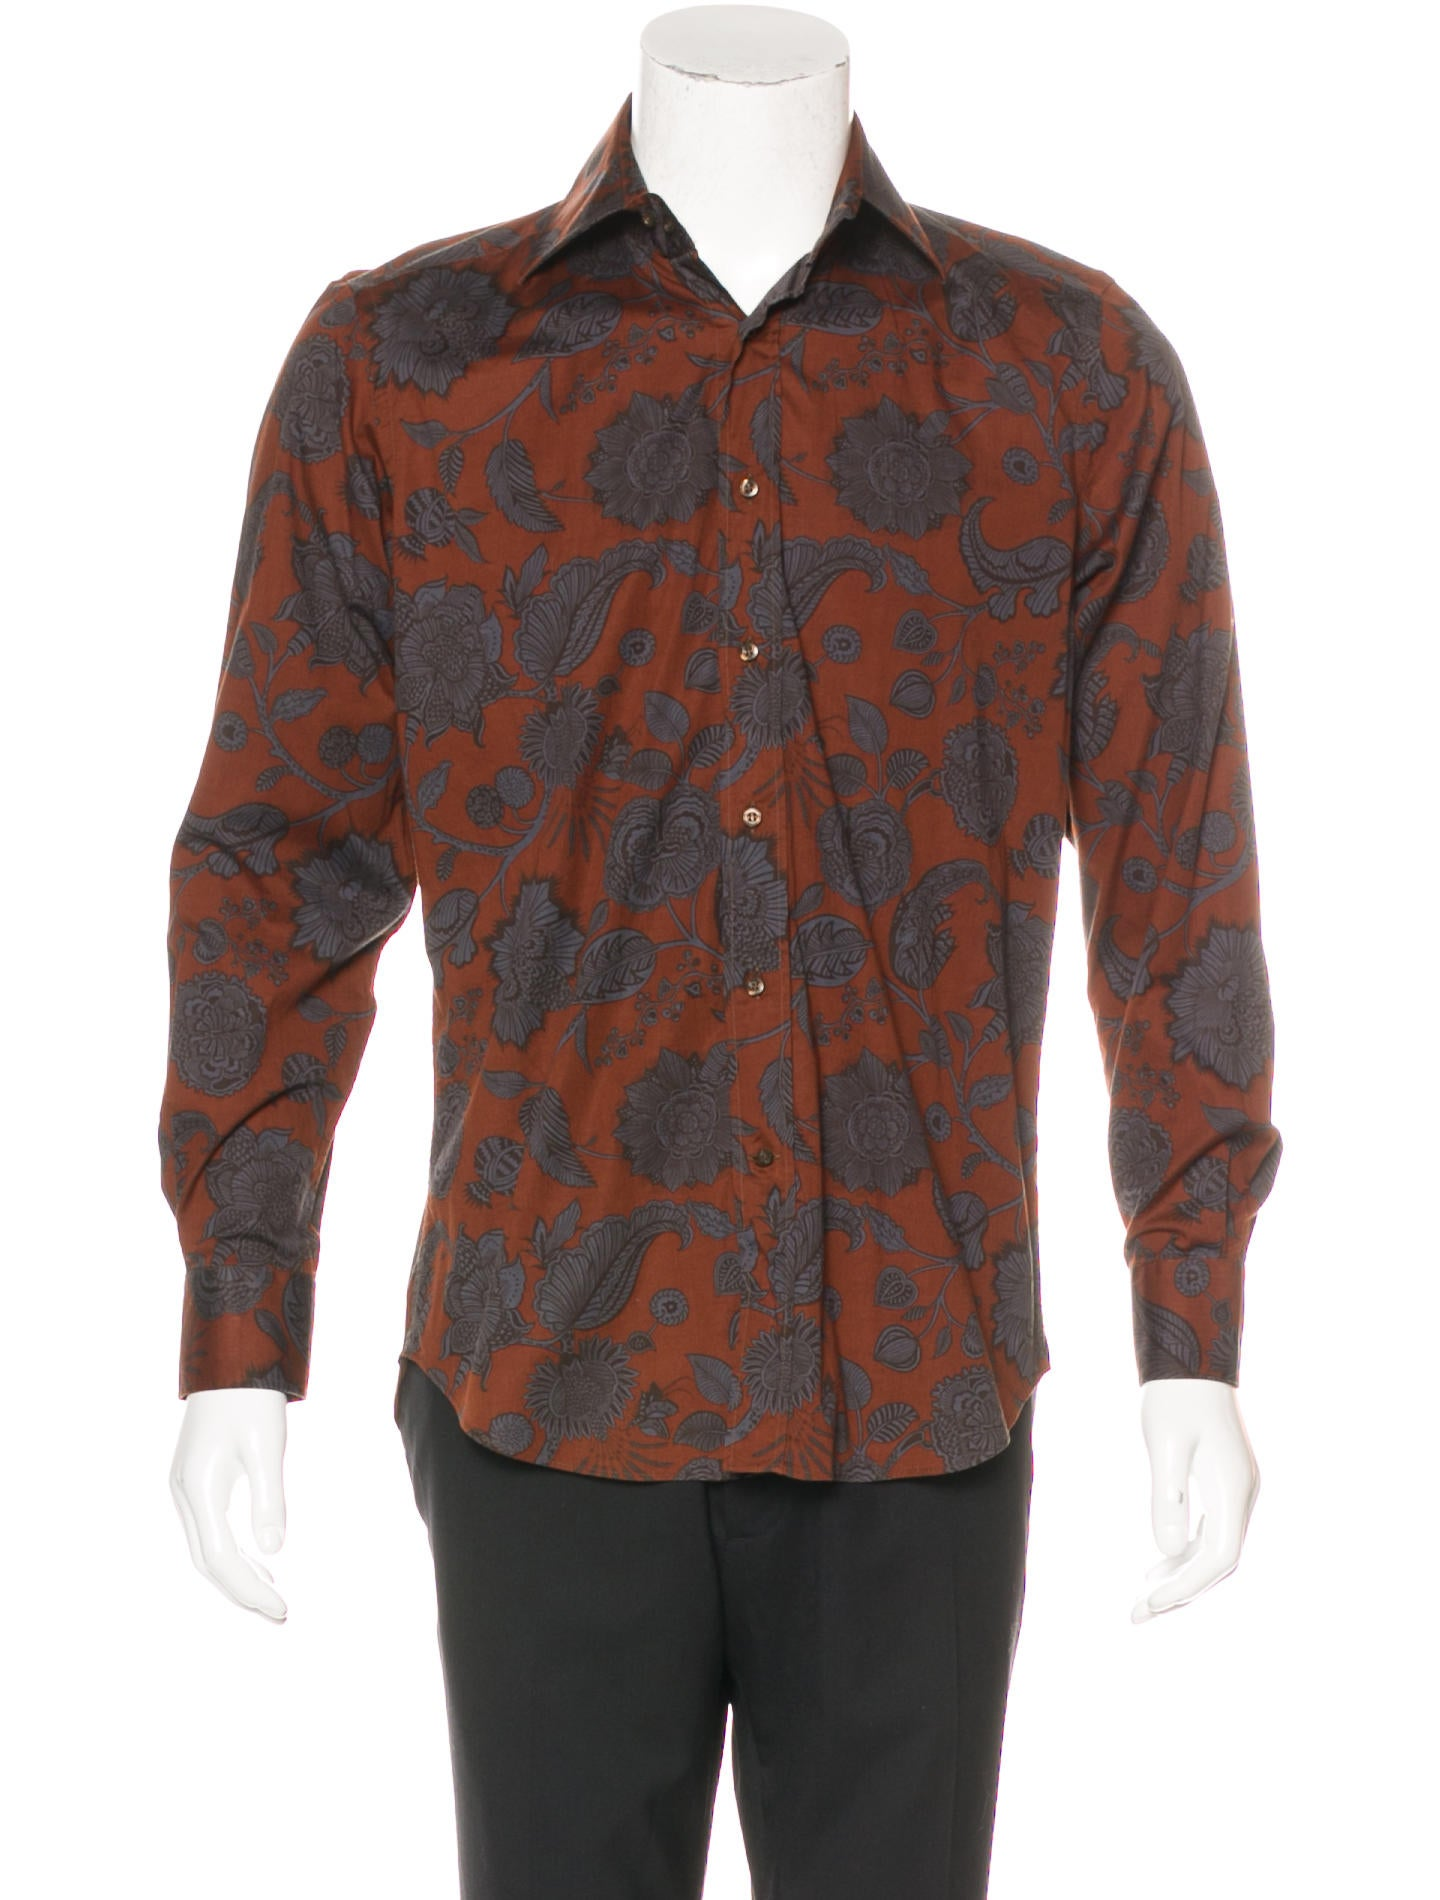 Etro floral print button up shirt clothing etr50286 for Etro men s shirts